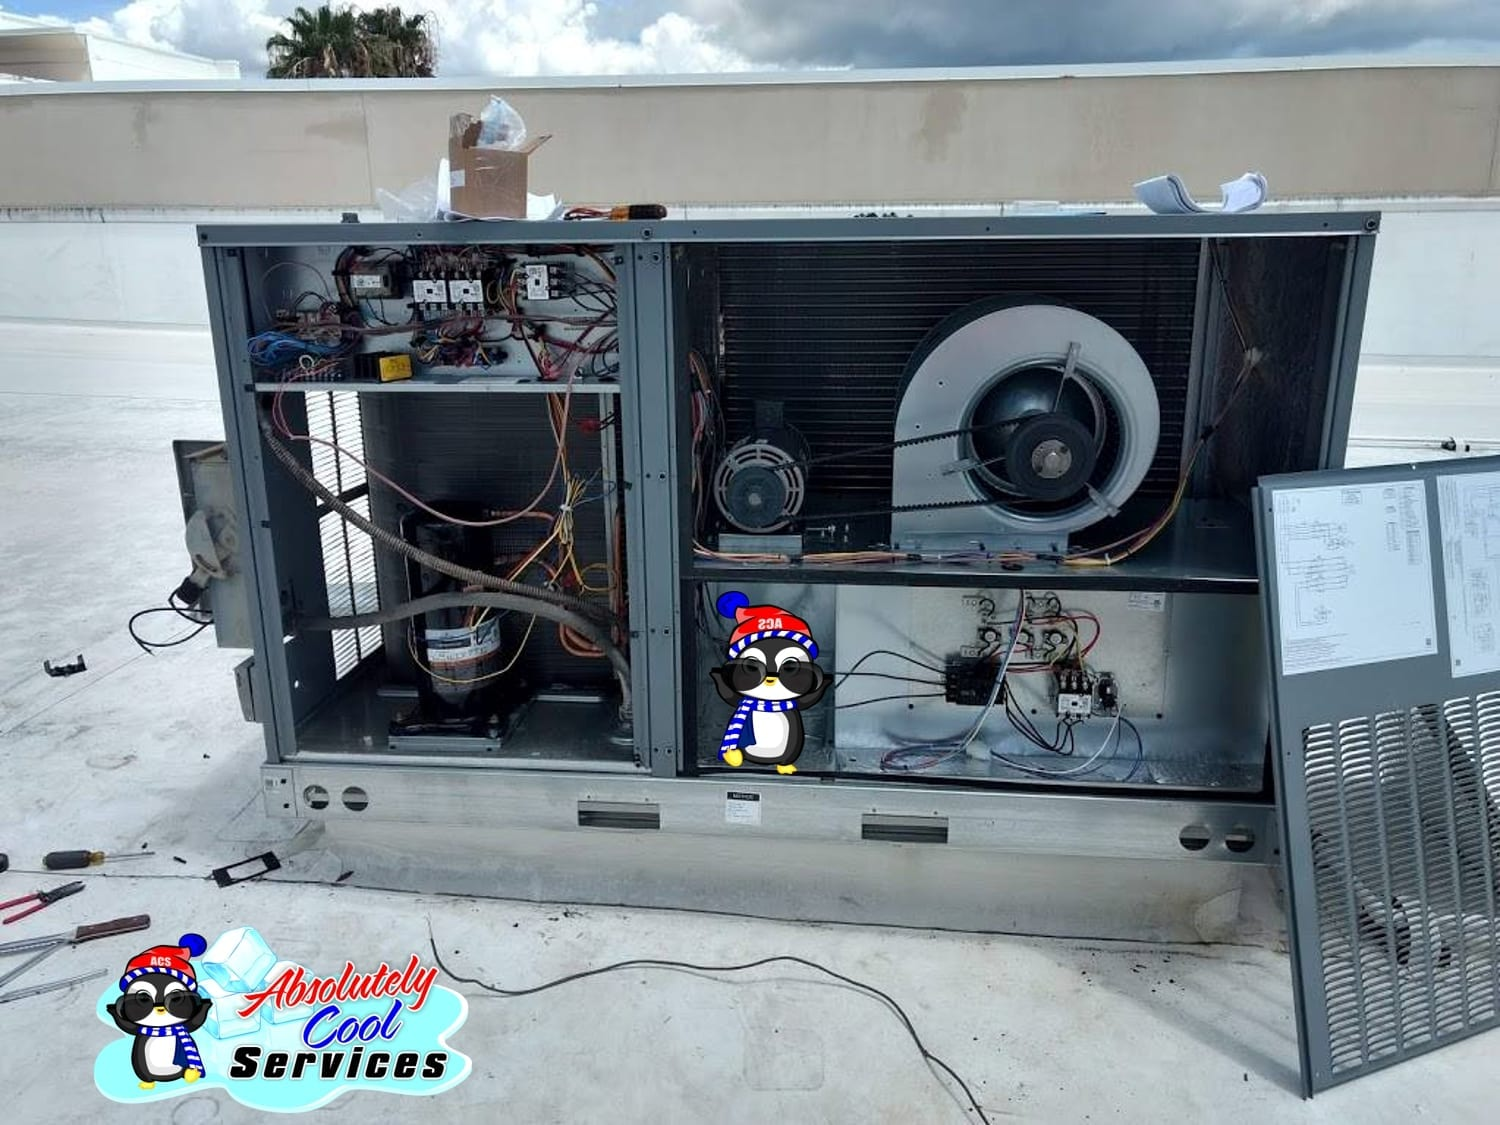 Roof Air Conditioning | HVAC Diagnosis Company near Palm Beach Gardens